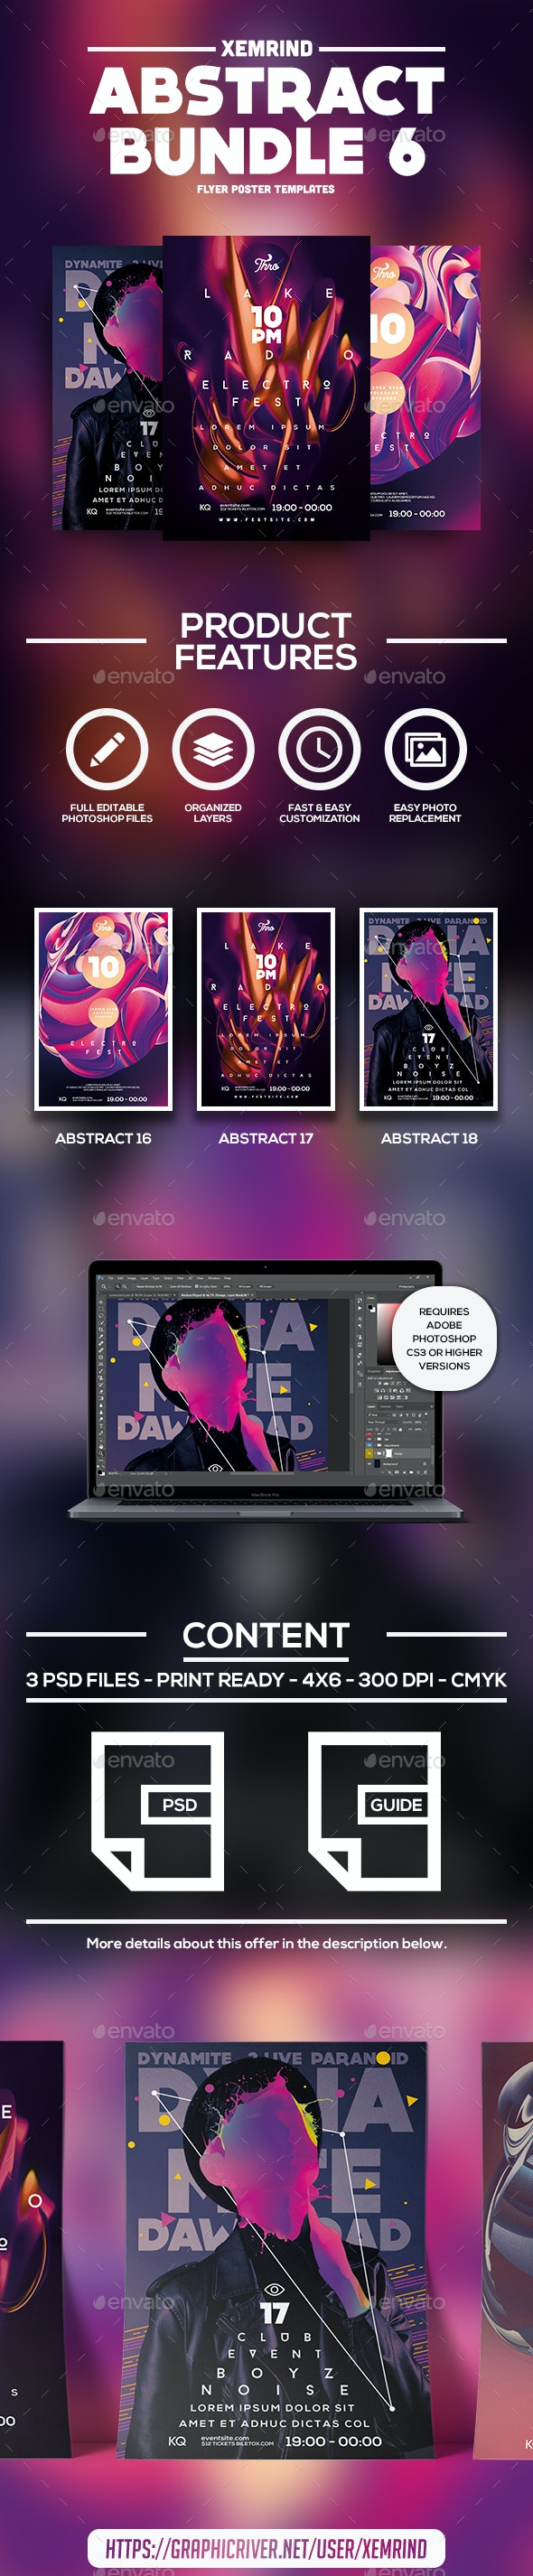 Abstract Flyer/Poster Template Bundle 6 - Events Flyers